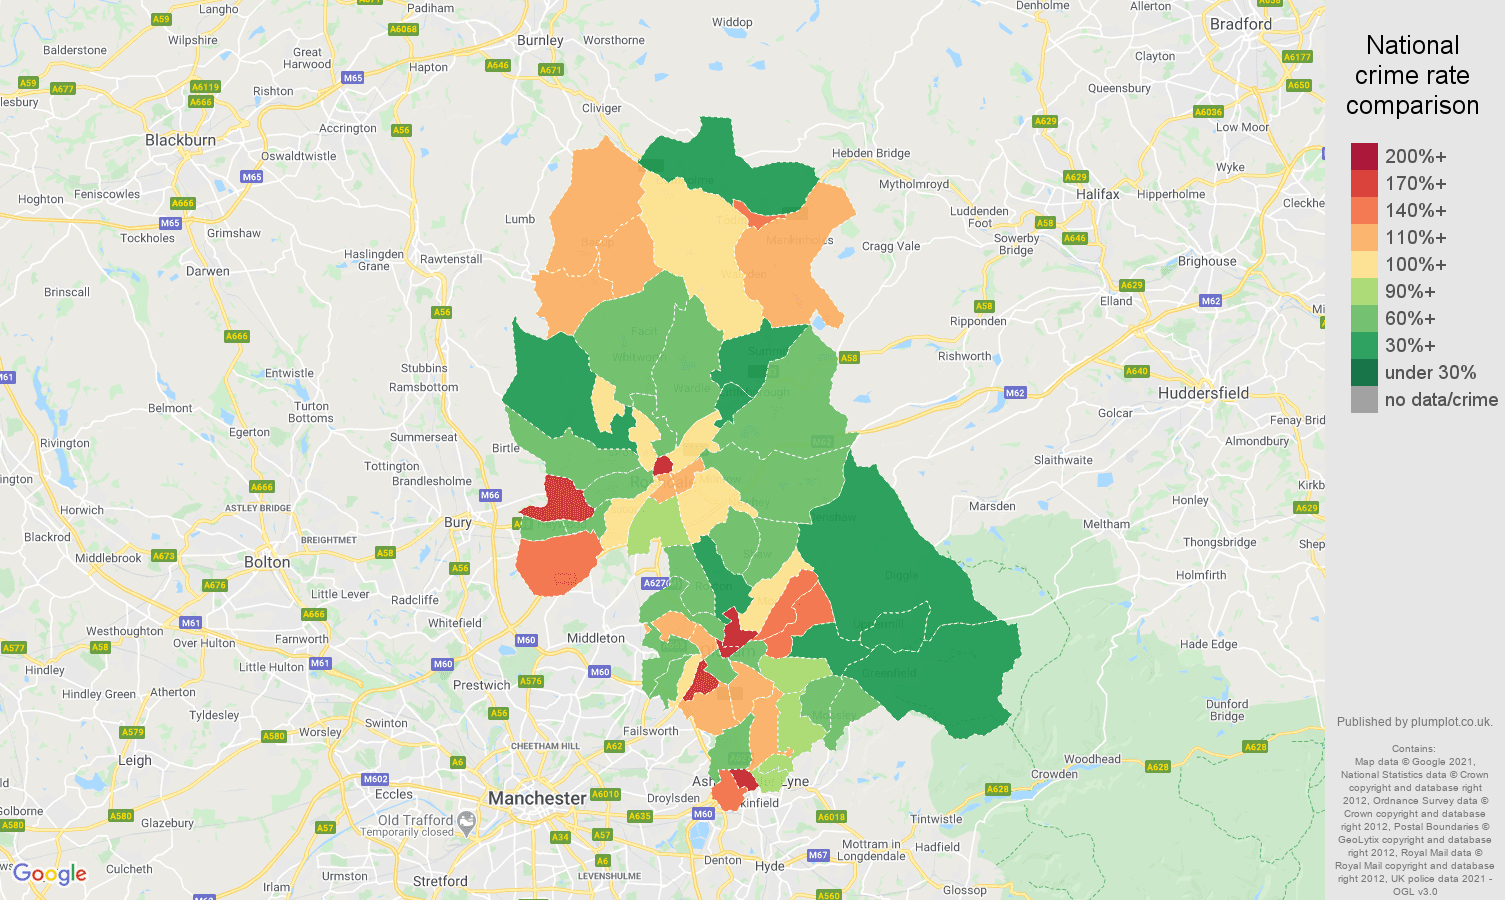 Oldham other theft crime rate comparison map